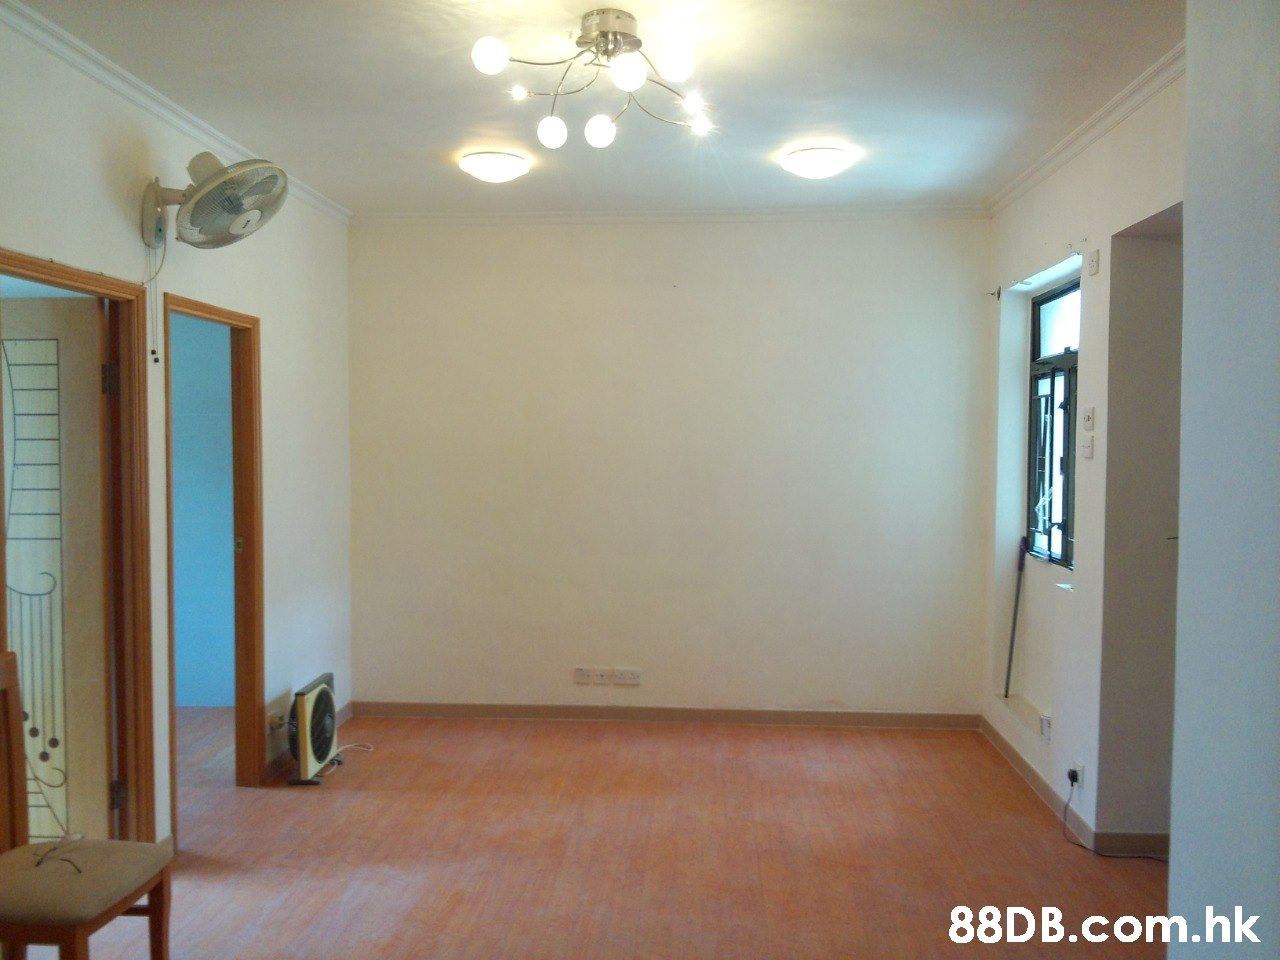 .hk  Room,Property,Floor,Ceiling,Building